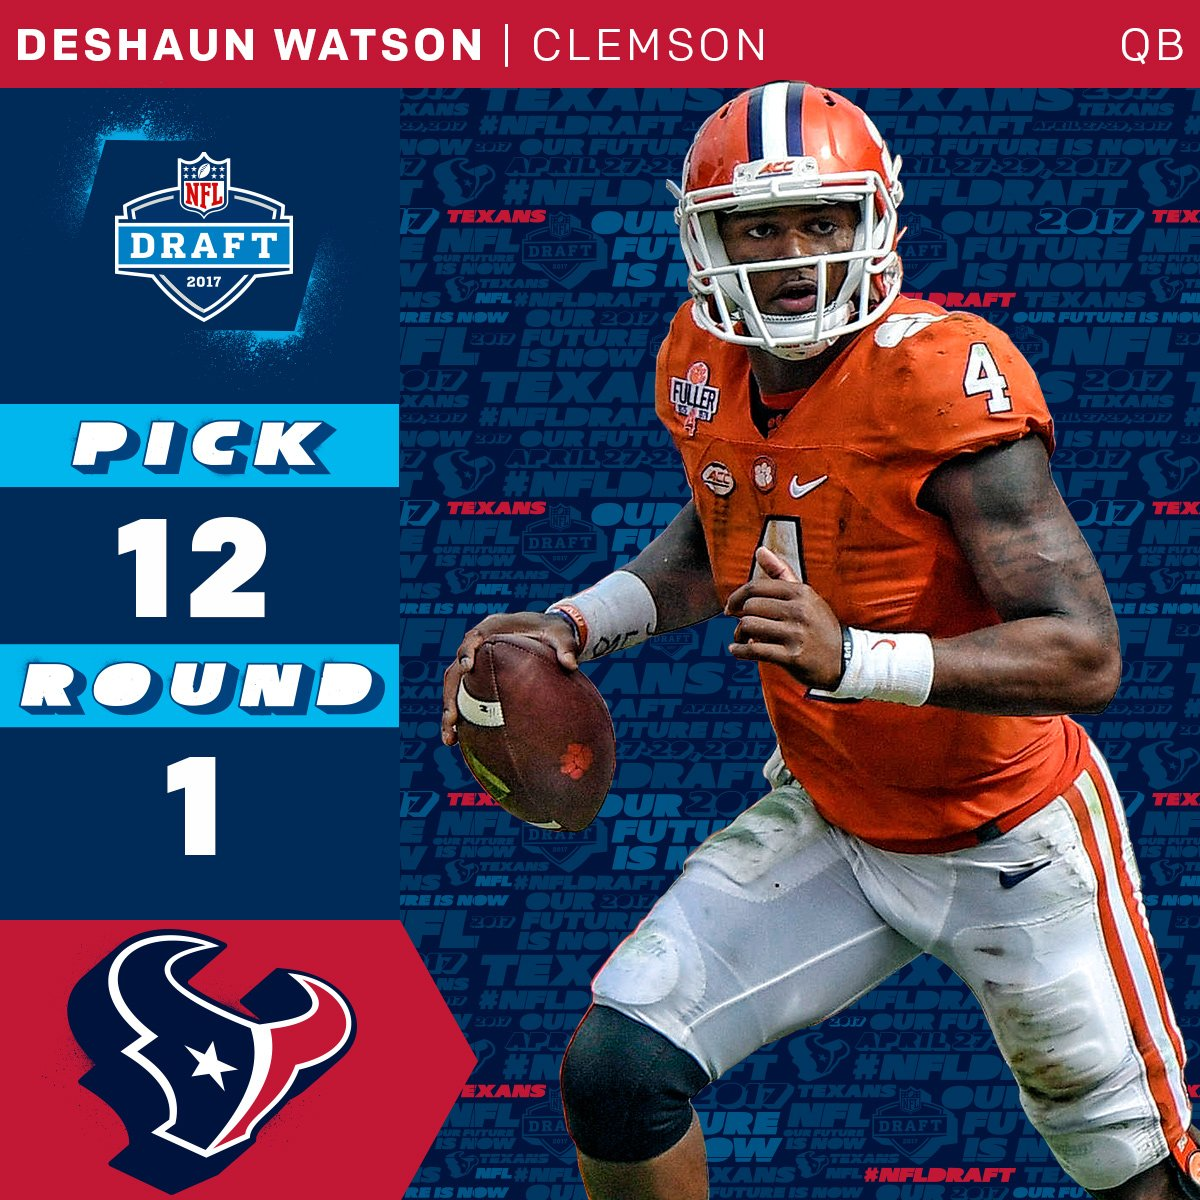 The @HoustonTexans trade up to select @ClemsonFB QB @DeshaunWatson4 wi...